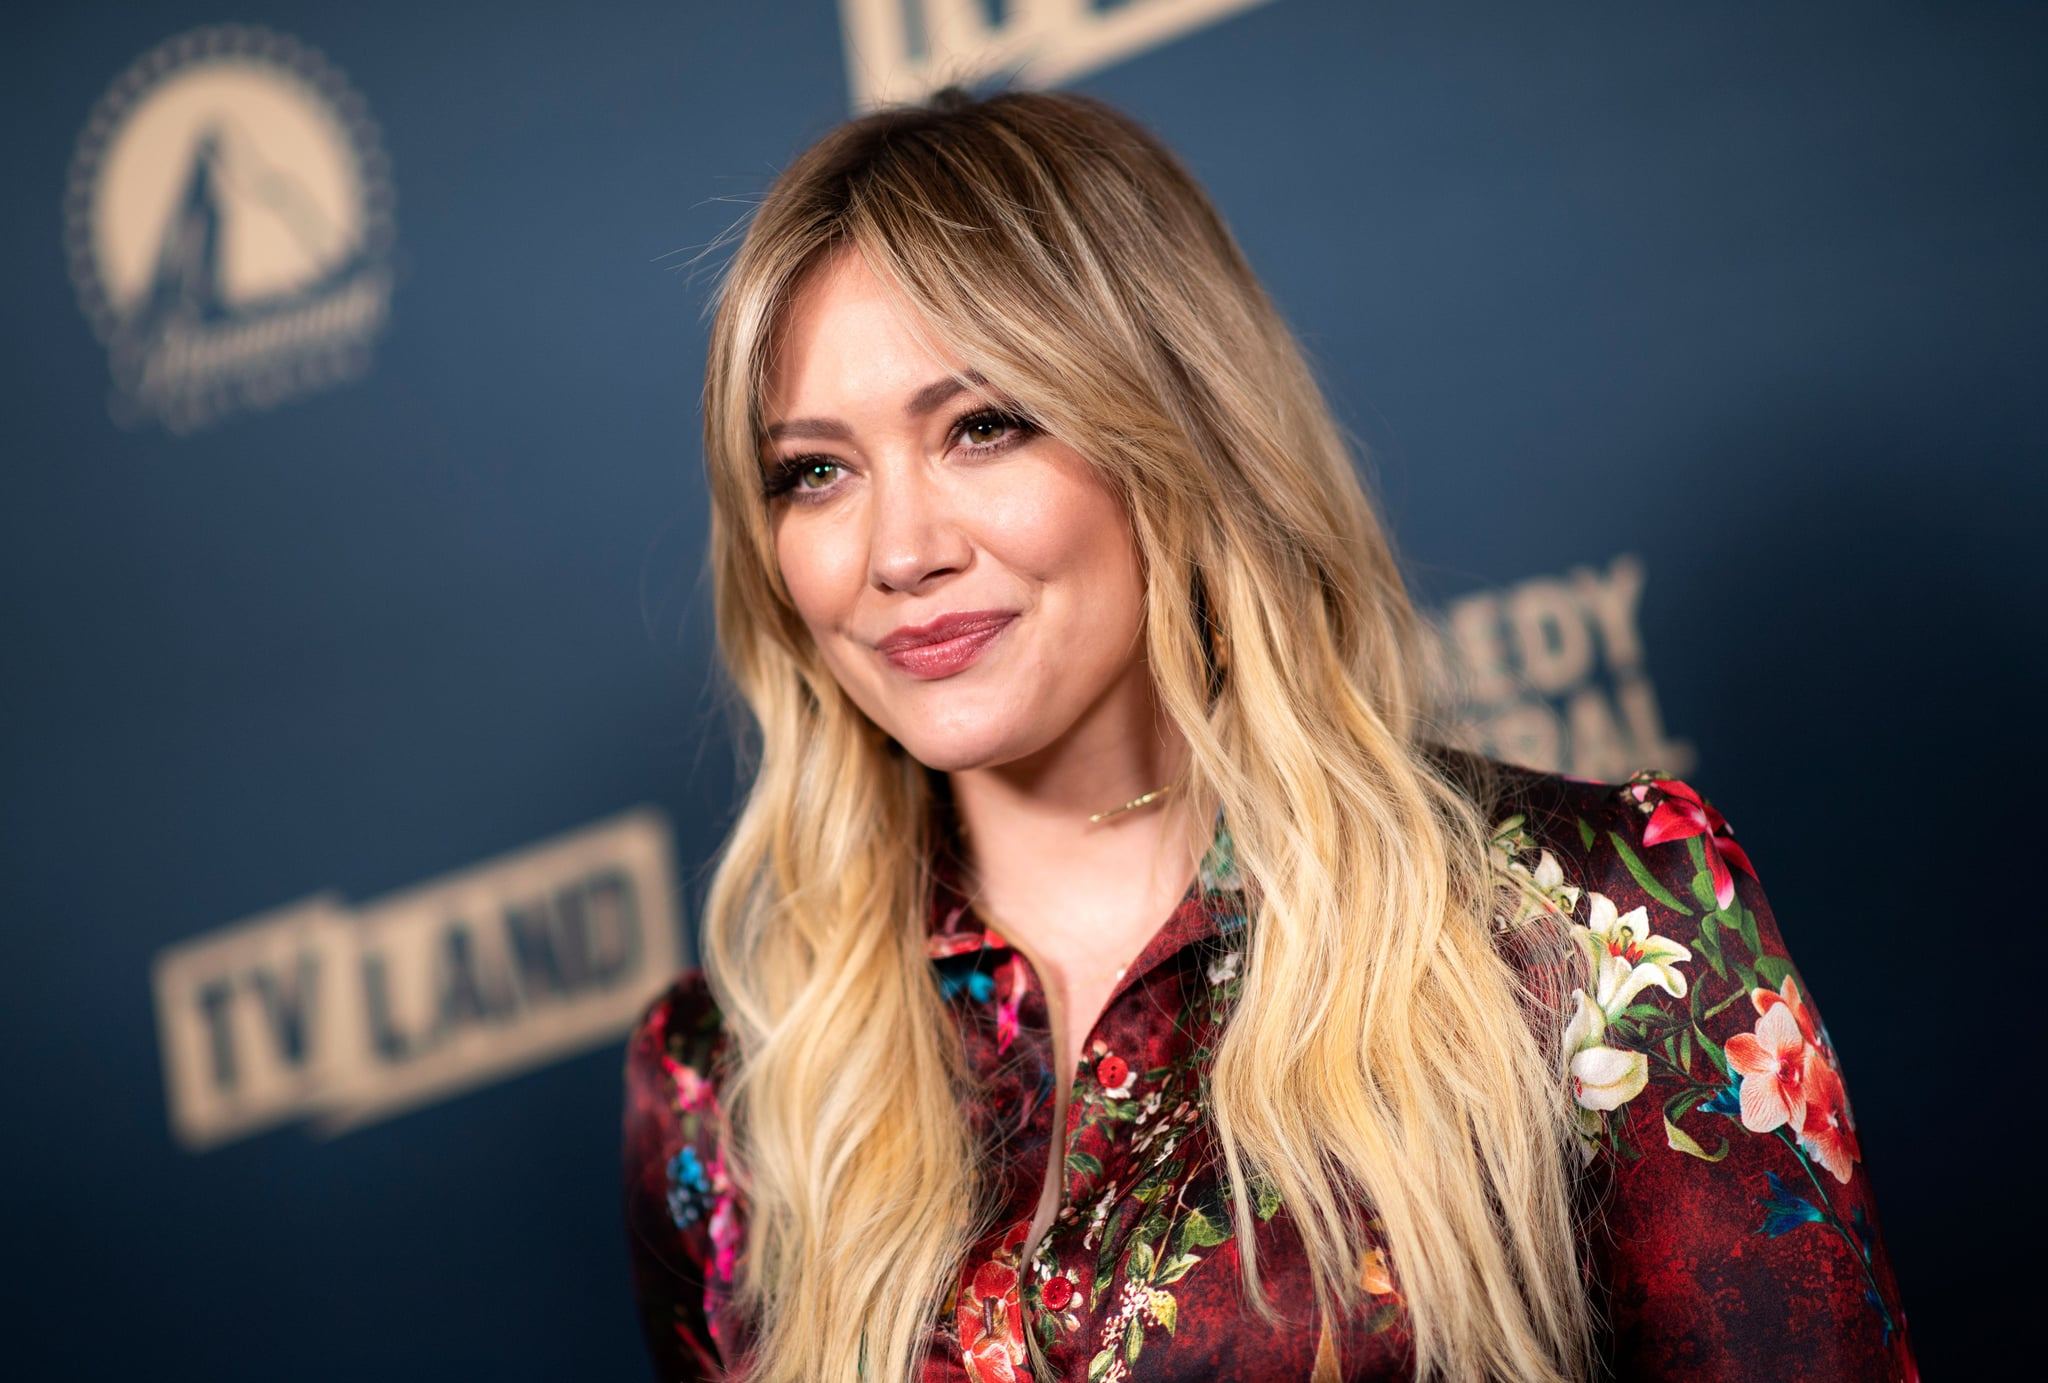 US actress Hilary Duff attends the first Comedy Central, Paramount Network and TV Land Press Day, on May 30, 2019 in Los Angeles, California. (Photo by VALERIE MACON / AFP)        (Photo credit should read VALERIE MACON/AFP/Getty Images)